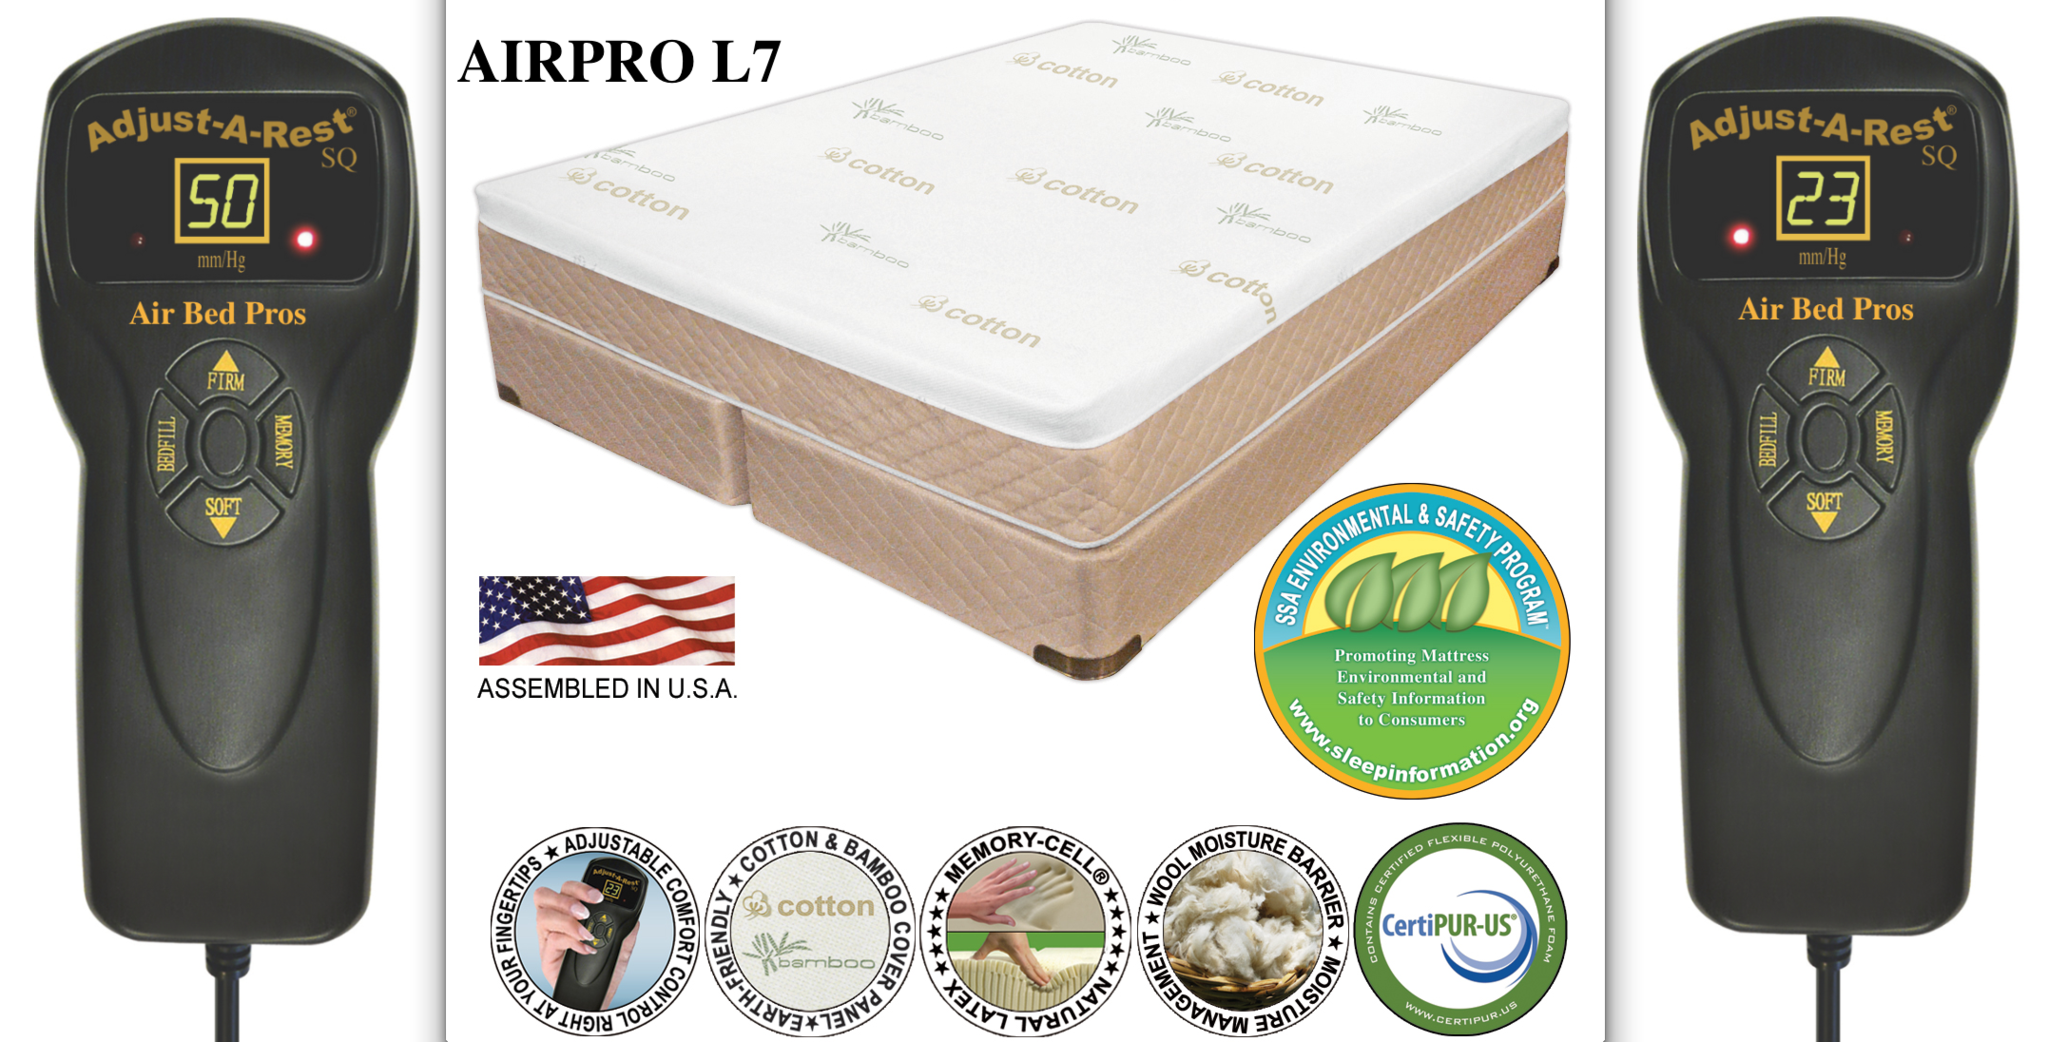 AIRPRO L7 Air Bed Compare to Sleep Number® m7 Bed, Bed